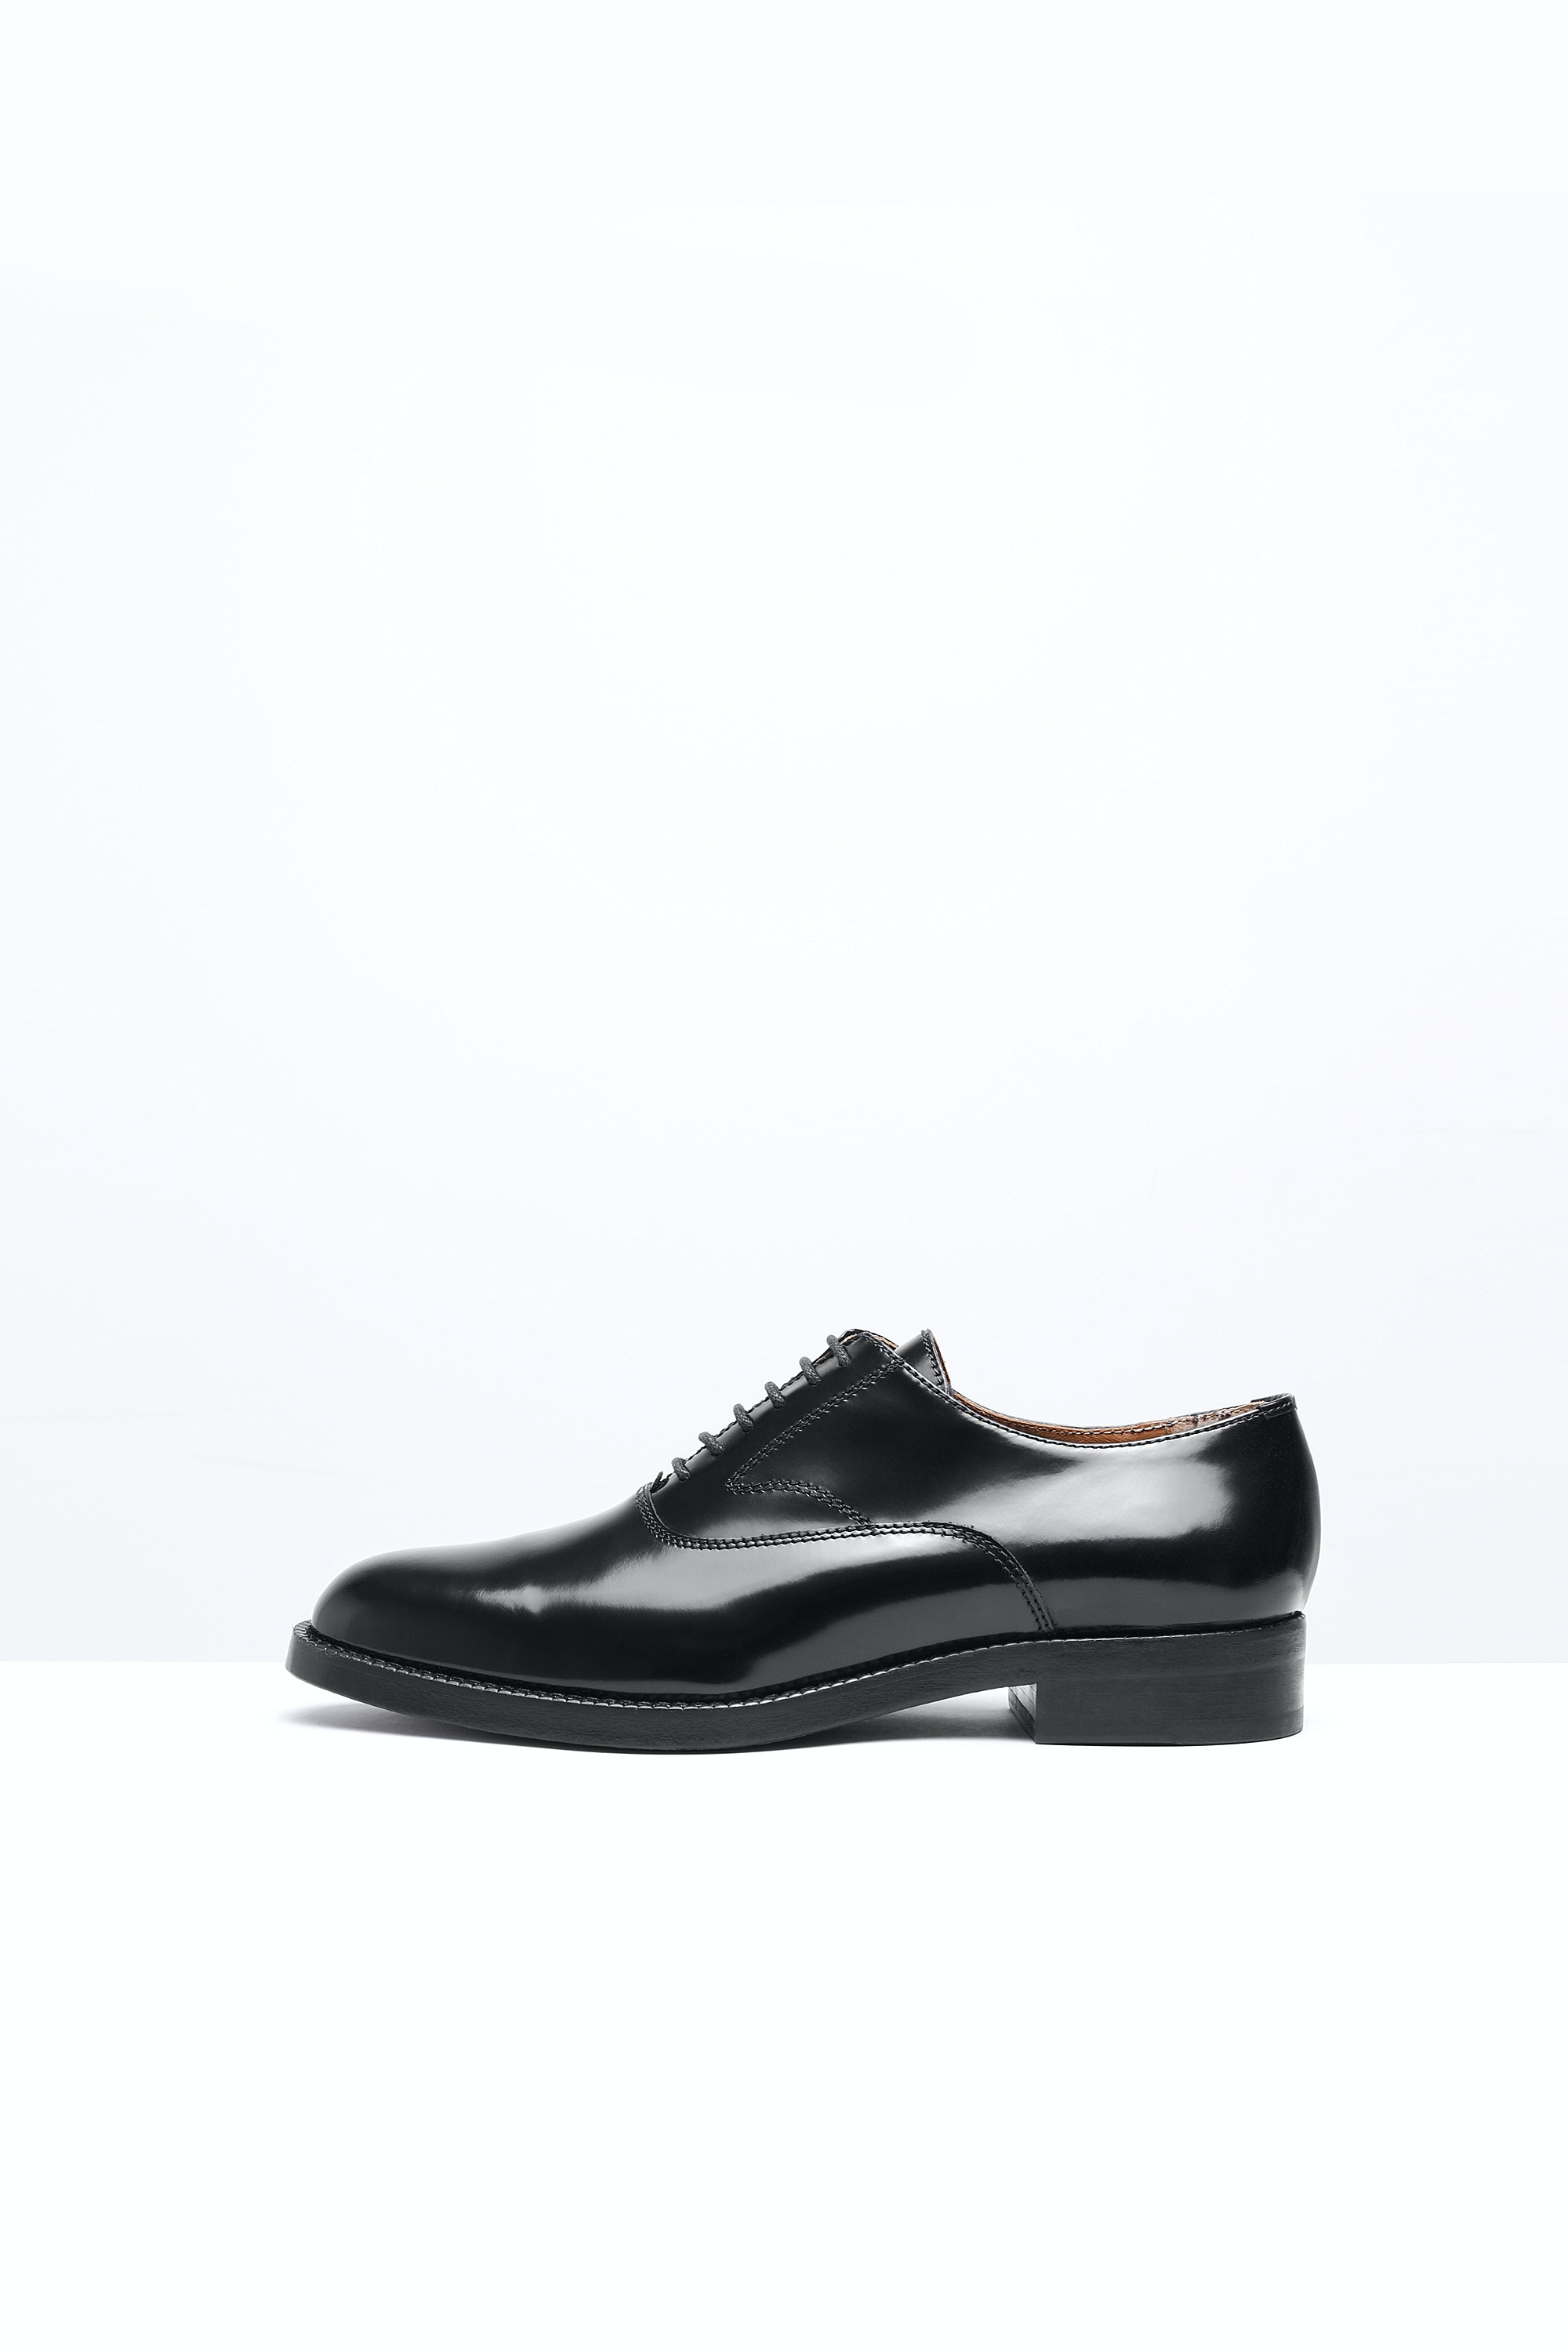 Youth Men's Lace-up Derby Shoes